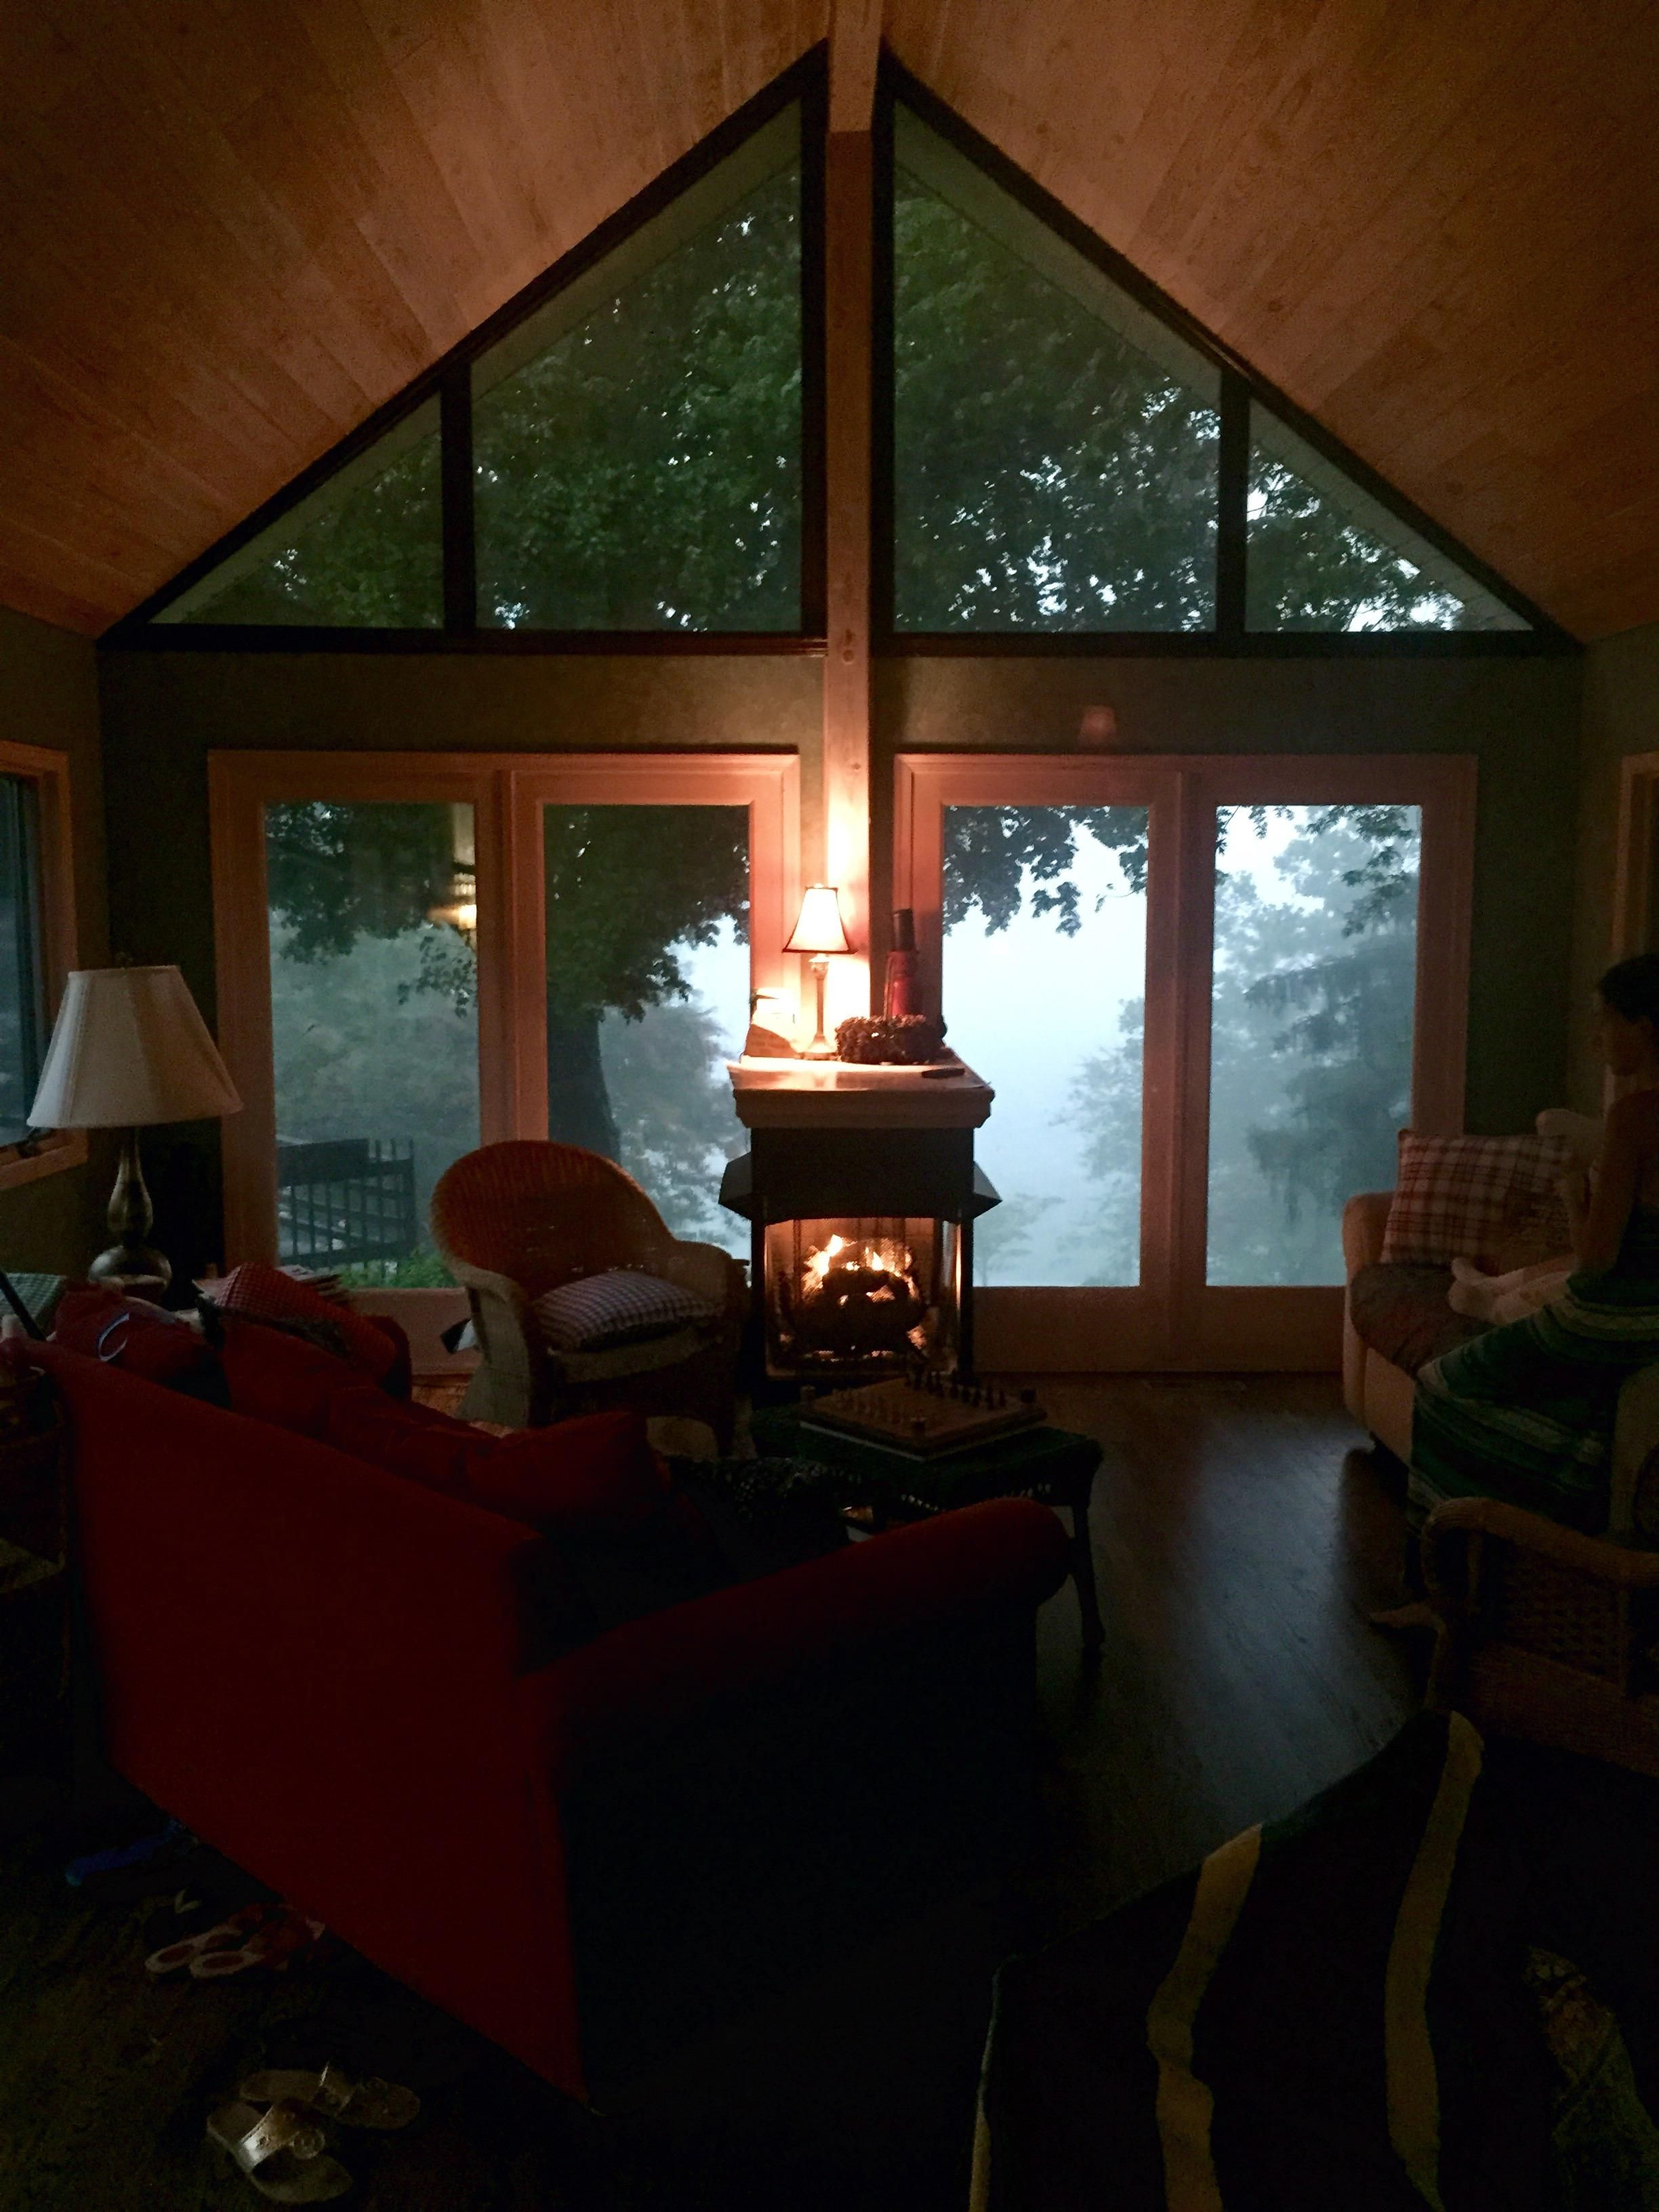 My Friends Lakehouse During A Storm Http Ift Tt 2todwsp House Elements Lake House Cozy Place